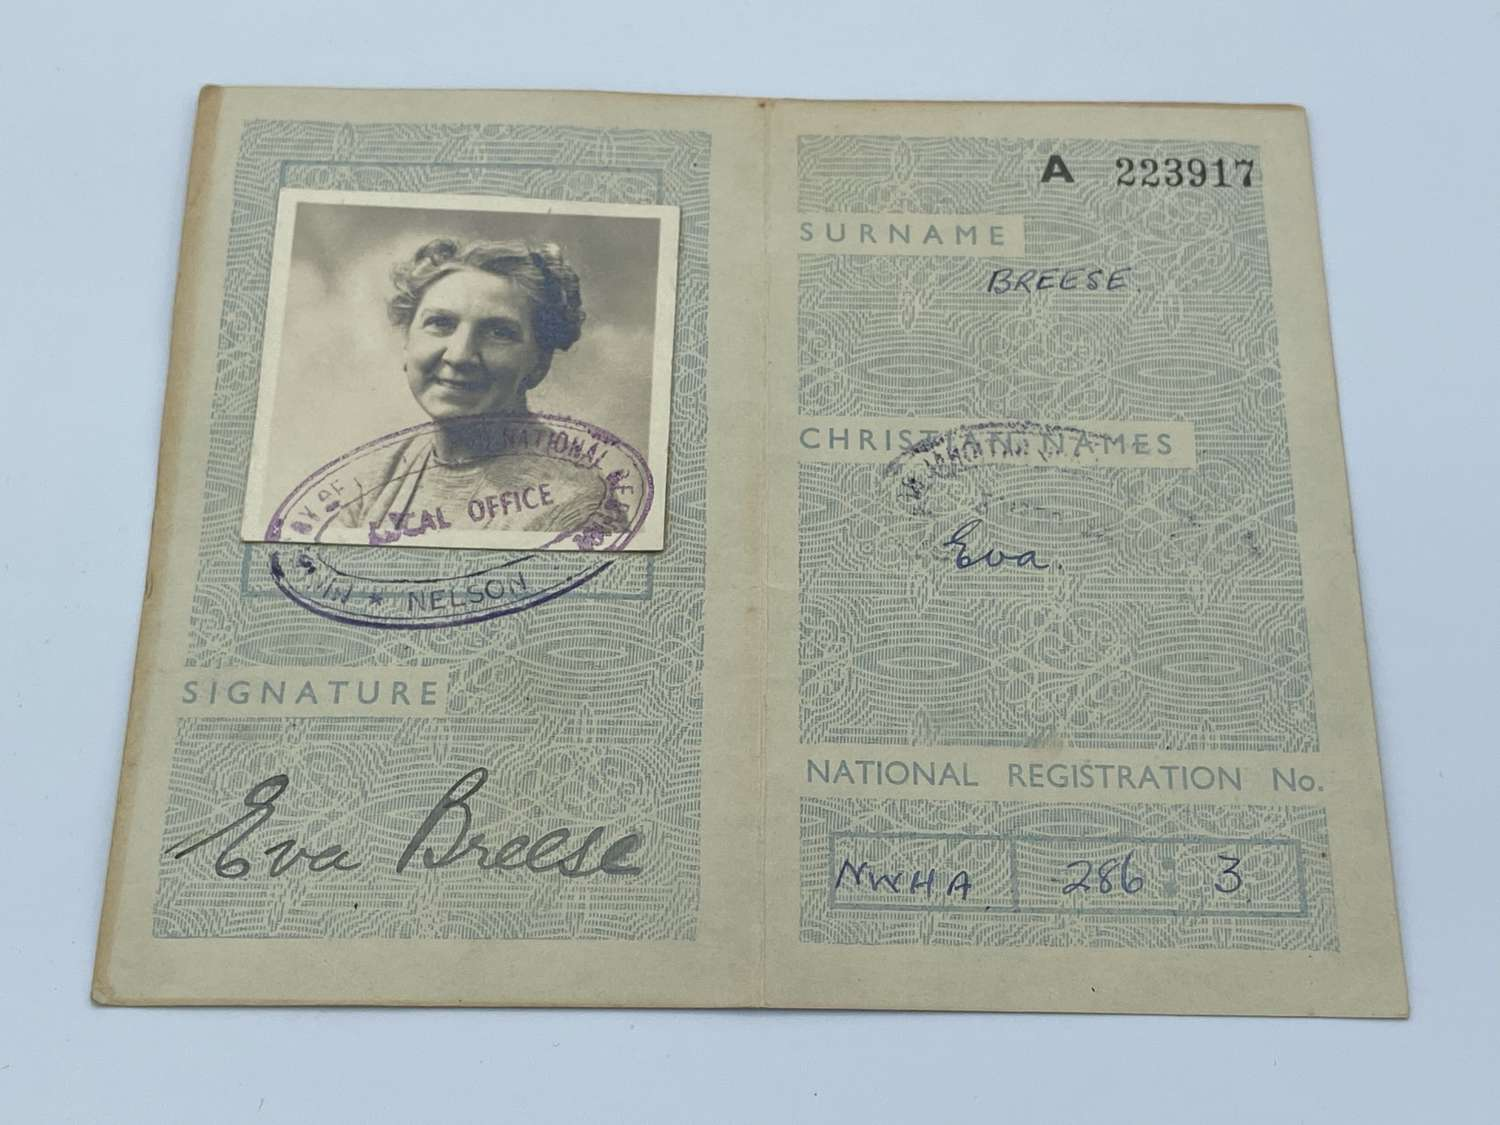 WW2 Travel Identity Card Belonging To Eva Breese